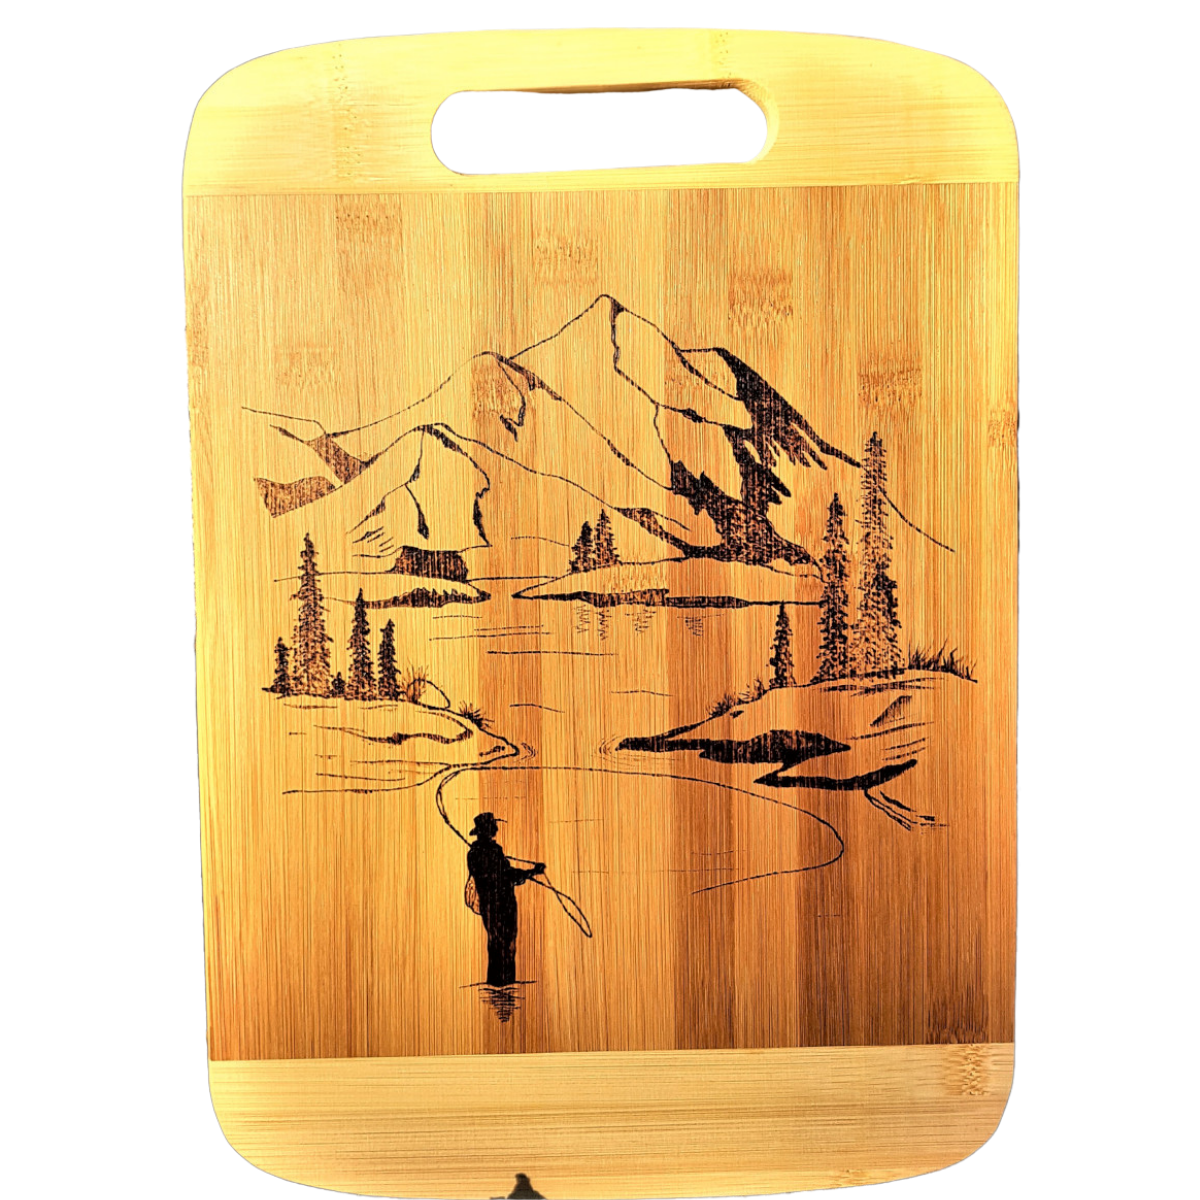 Cutting Board - Mountains & Fisherman by Viera Art - pyrography